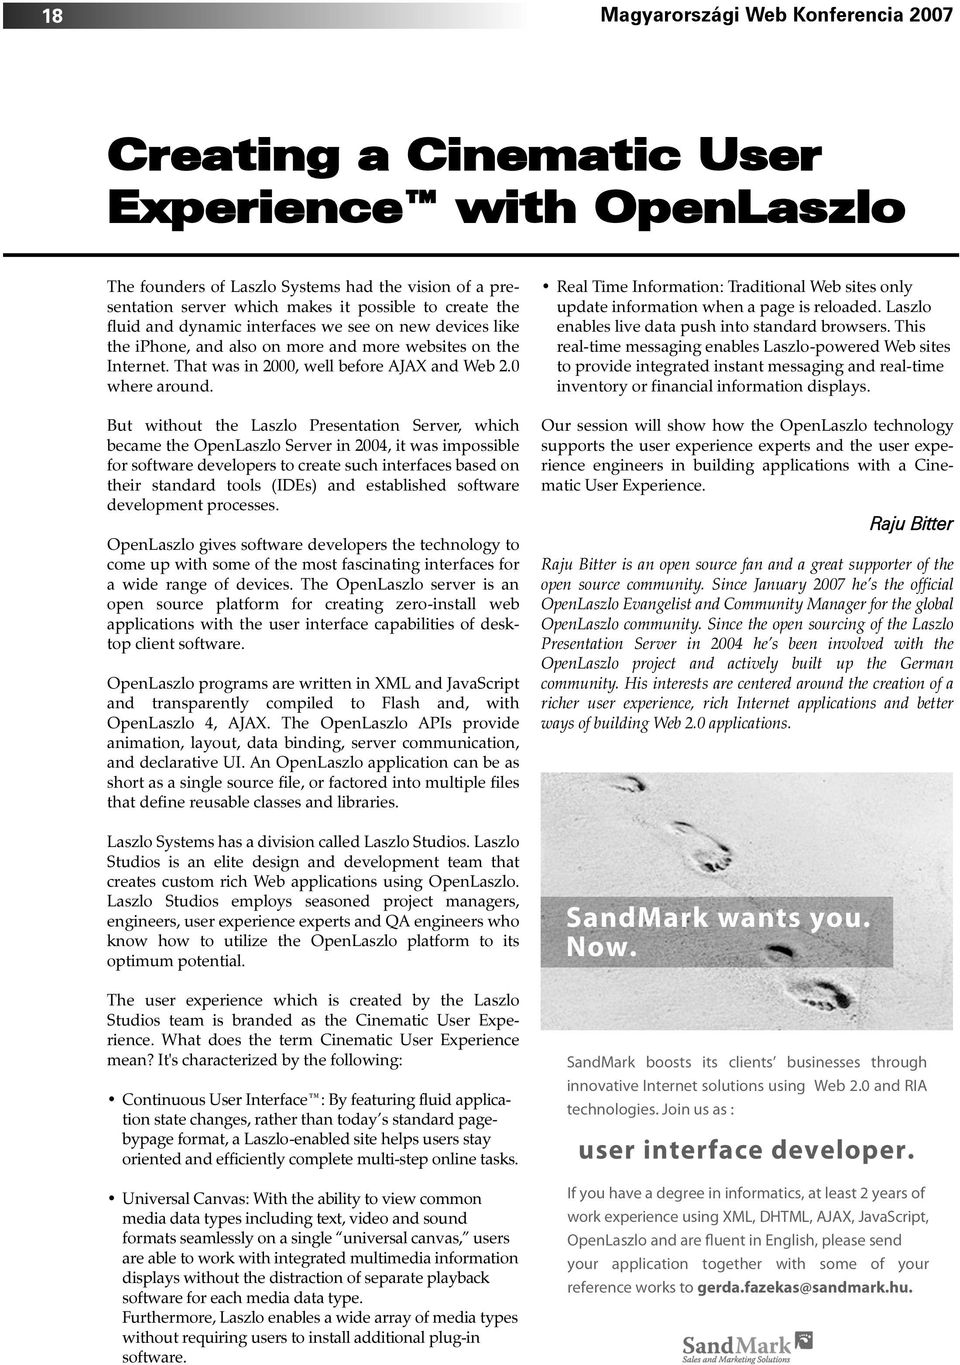 But without the Laszlo Presentation Server, which became the OpenLaszlo Server in 2004, it was impossible for software developers to create such interfaces based on their standard tools (IDEs) and